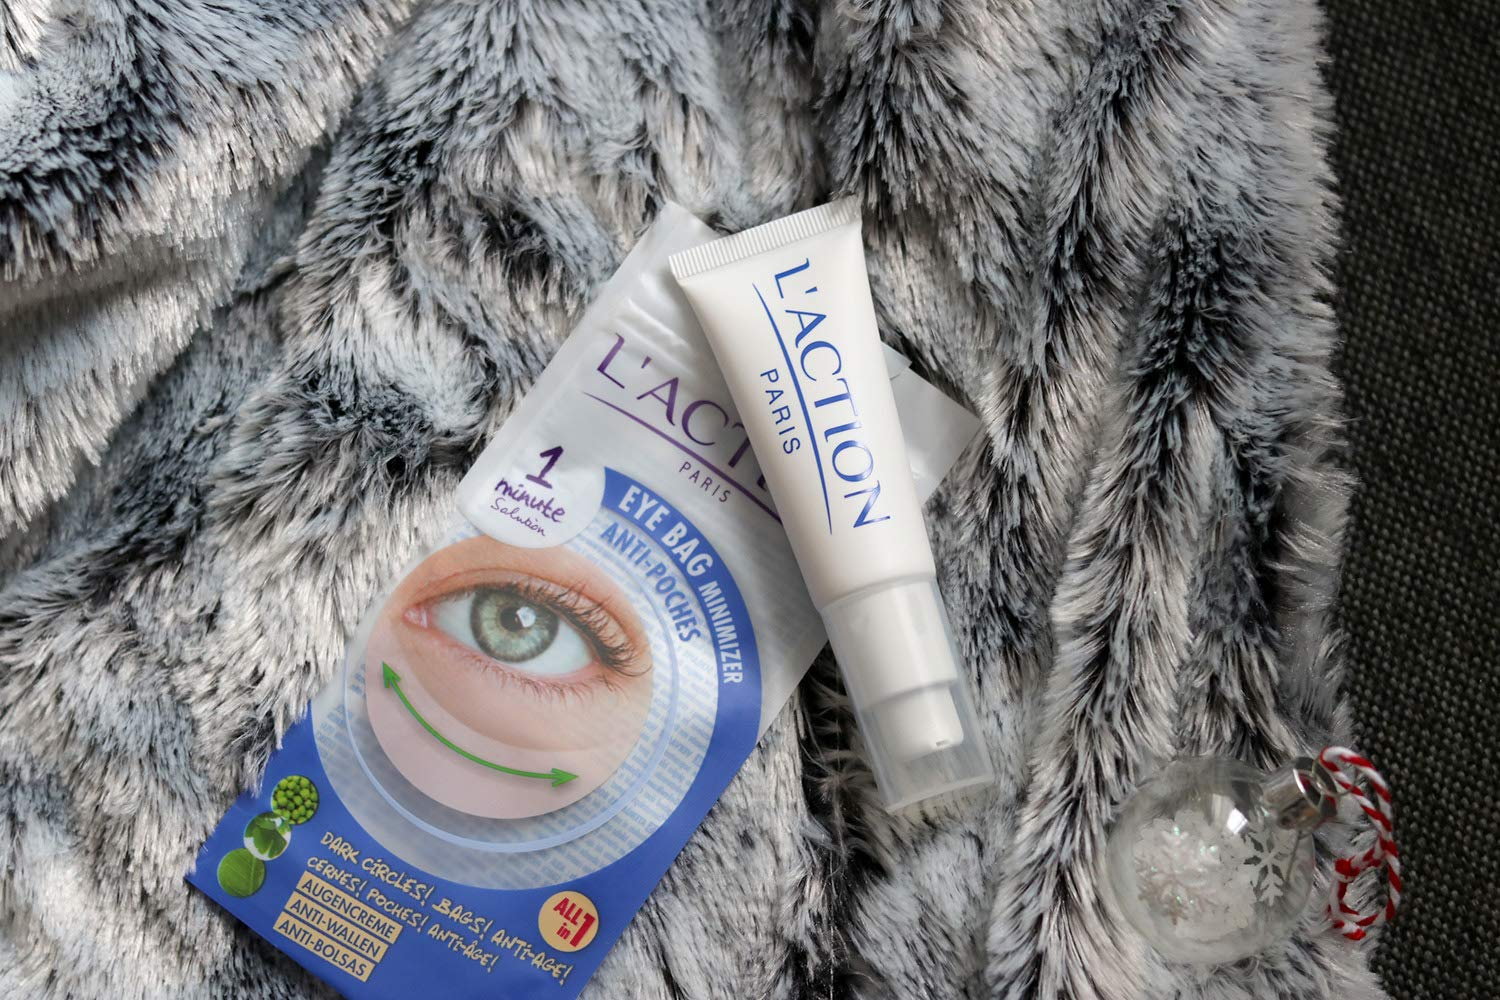 LAction Paris Eye Bag Minimizer